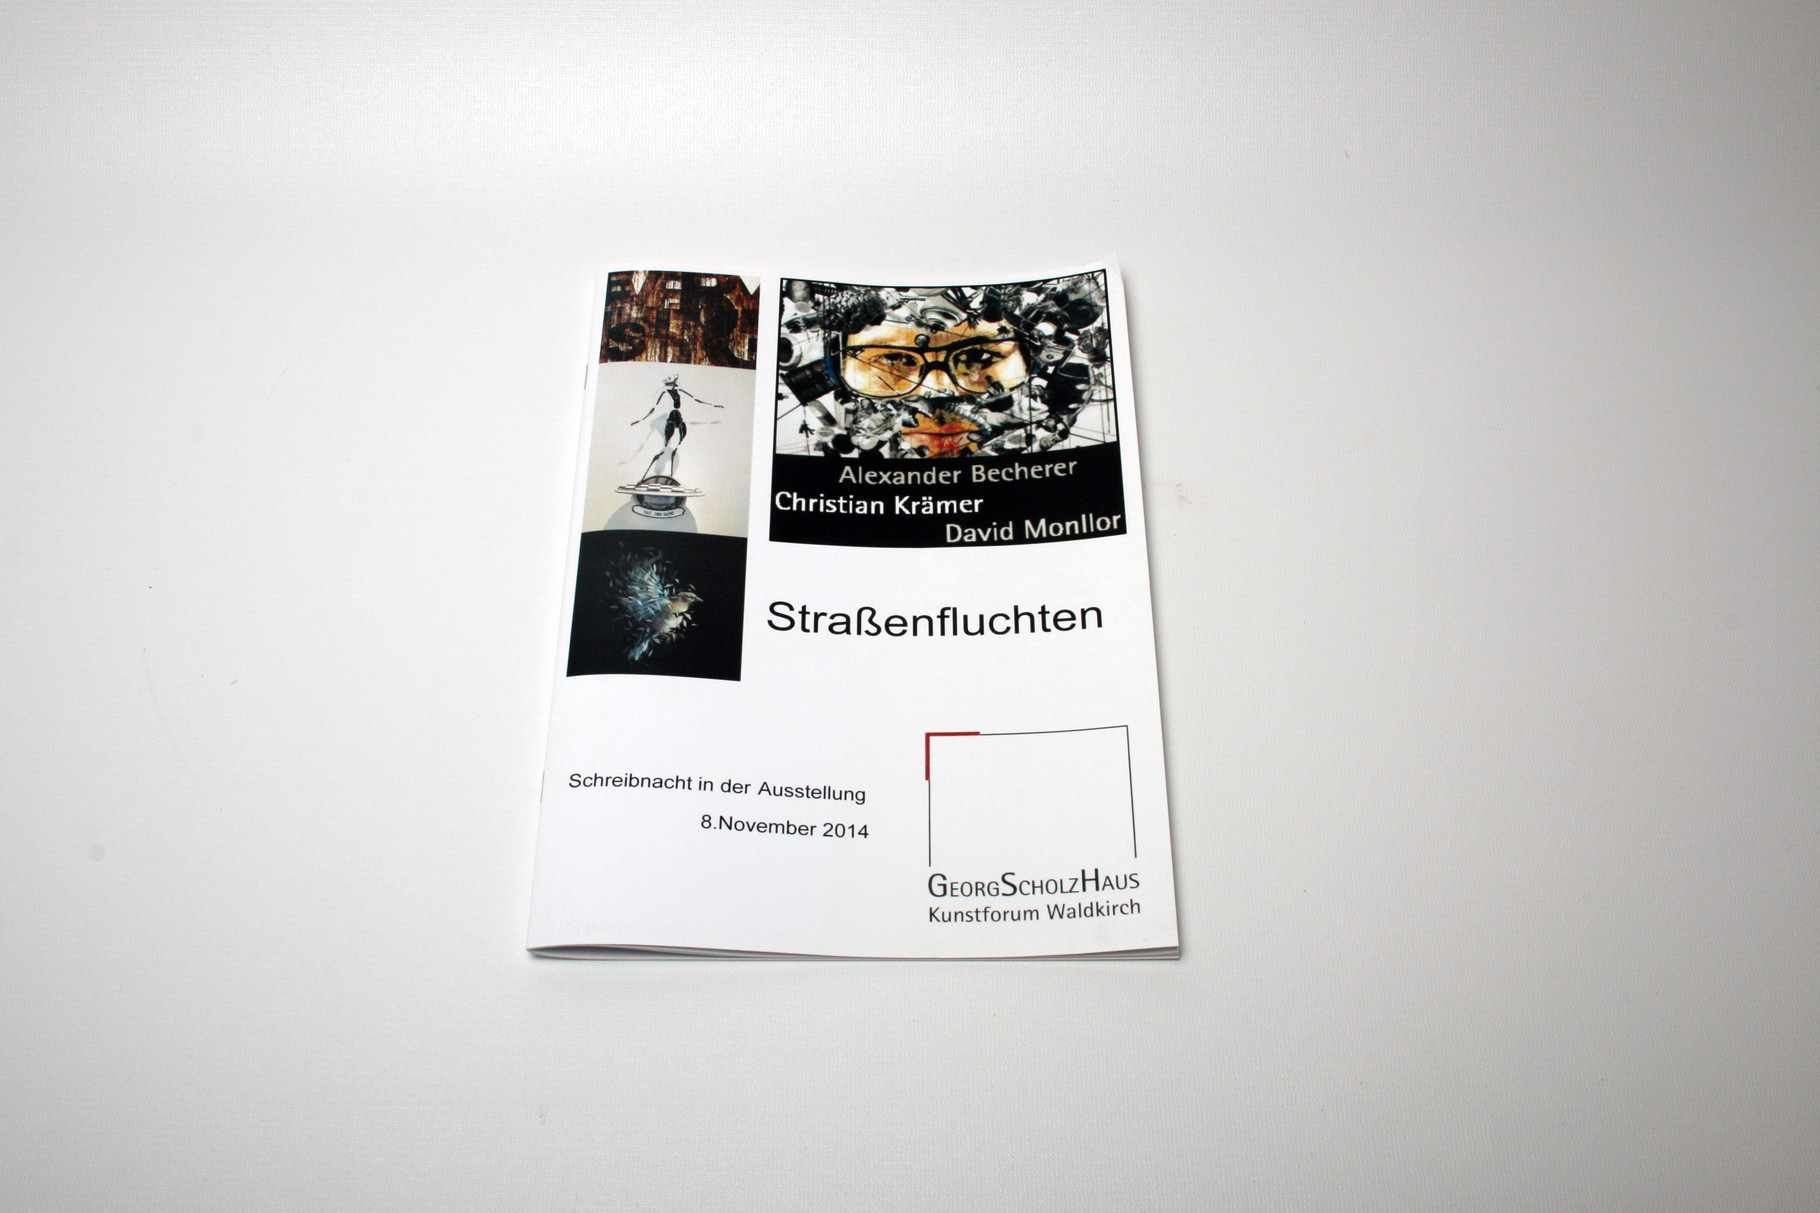 Kunstkatalog Digitaldruck